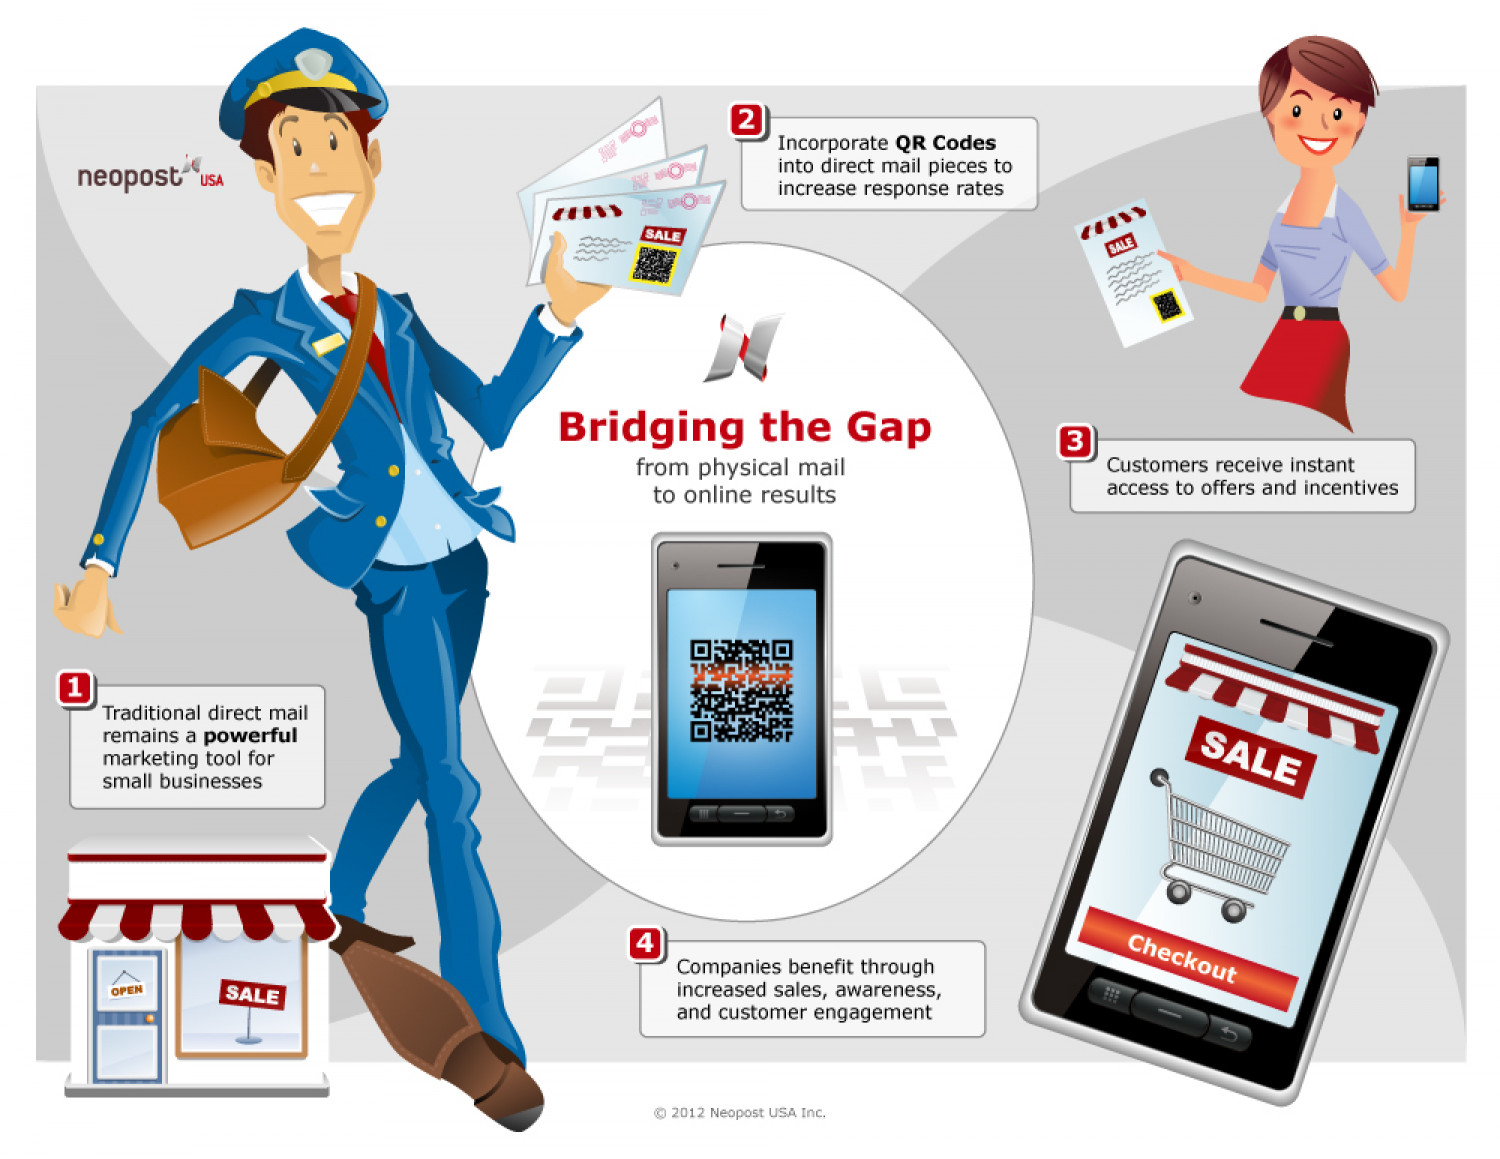 QR Codes Bridging the Gap Infographic